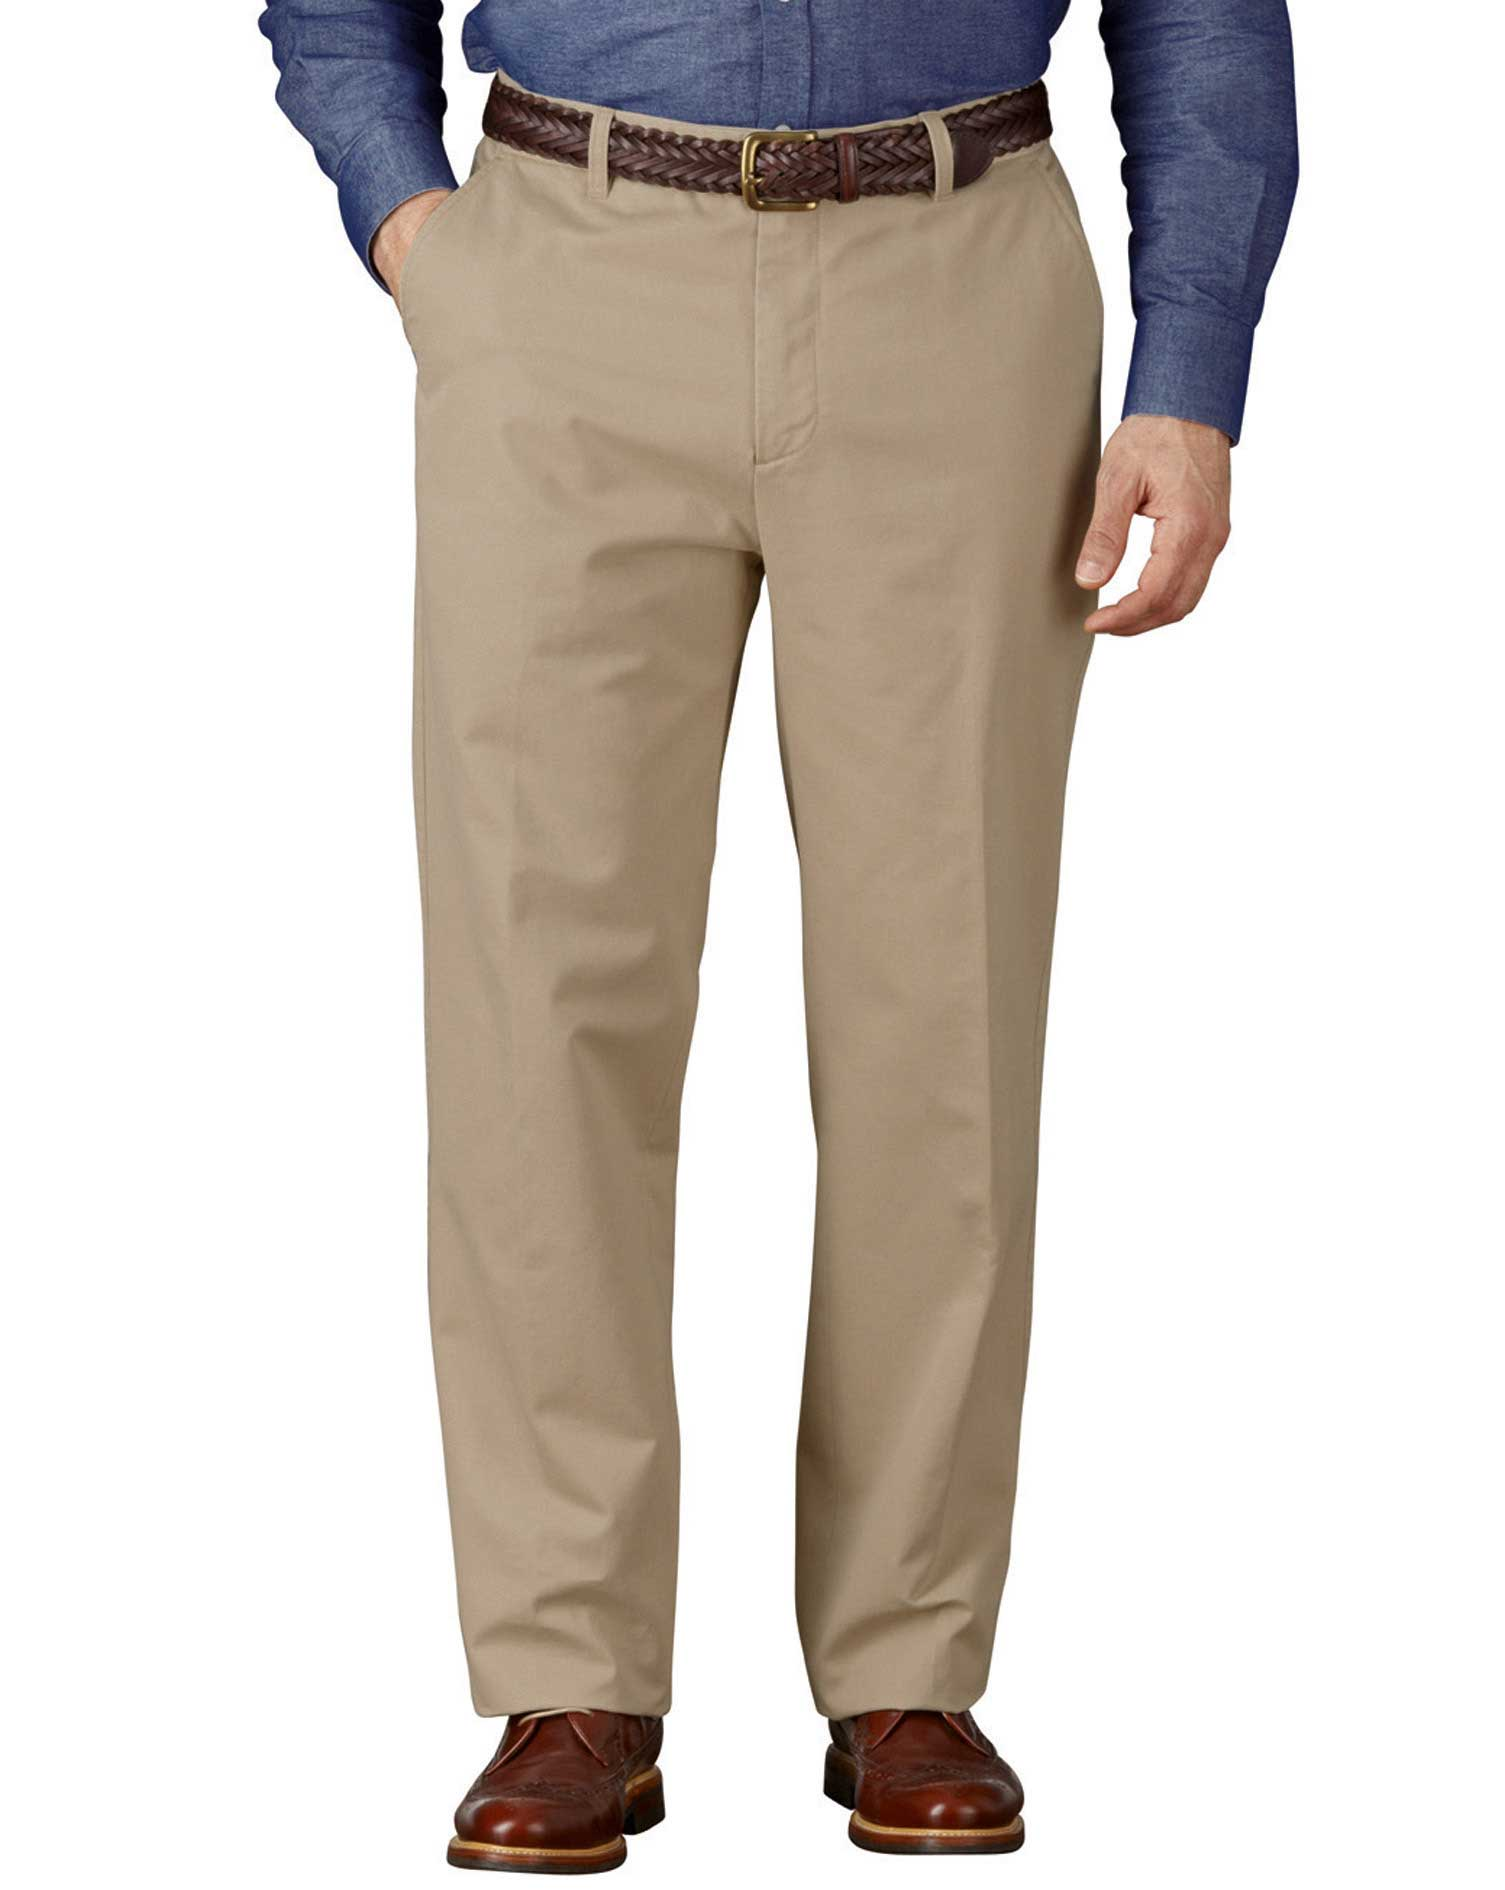 Stone Classic Fit Flat Front Weekend Cotton Chino Trousers Size W36 L38 by Charles Tyrwhitt